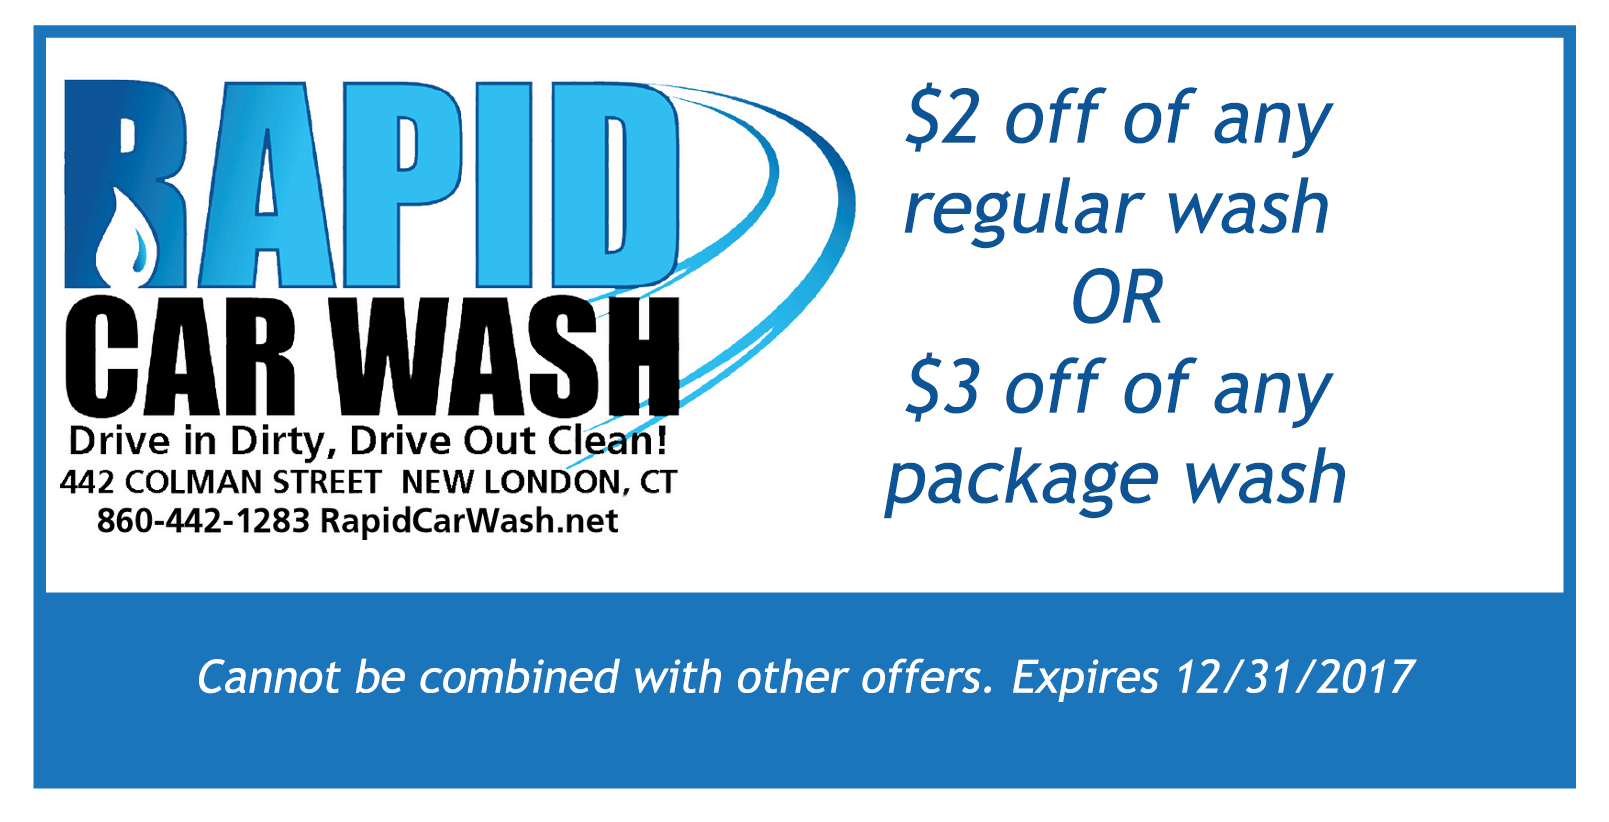 Car wash discount coupons